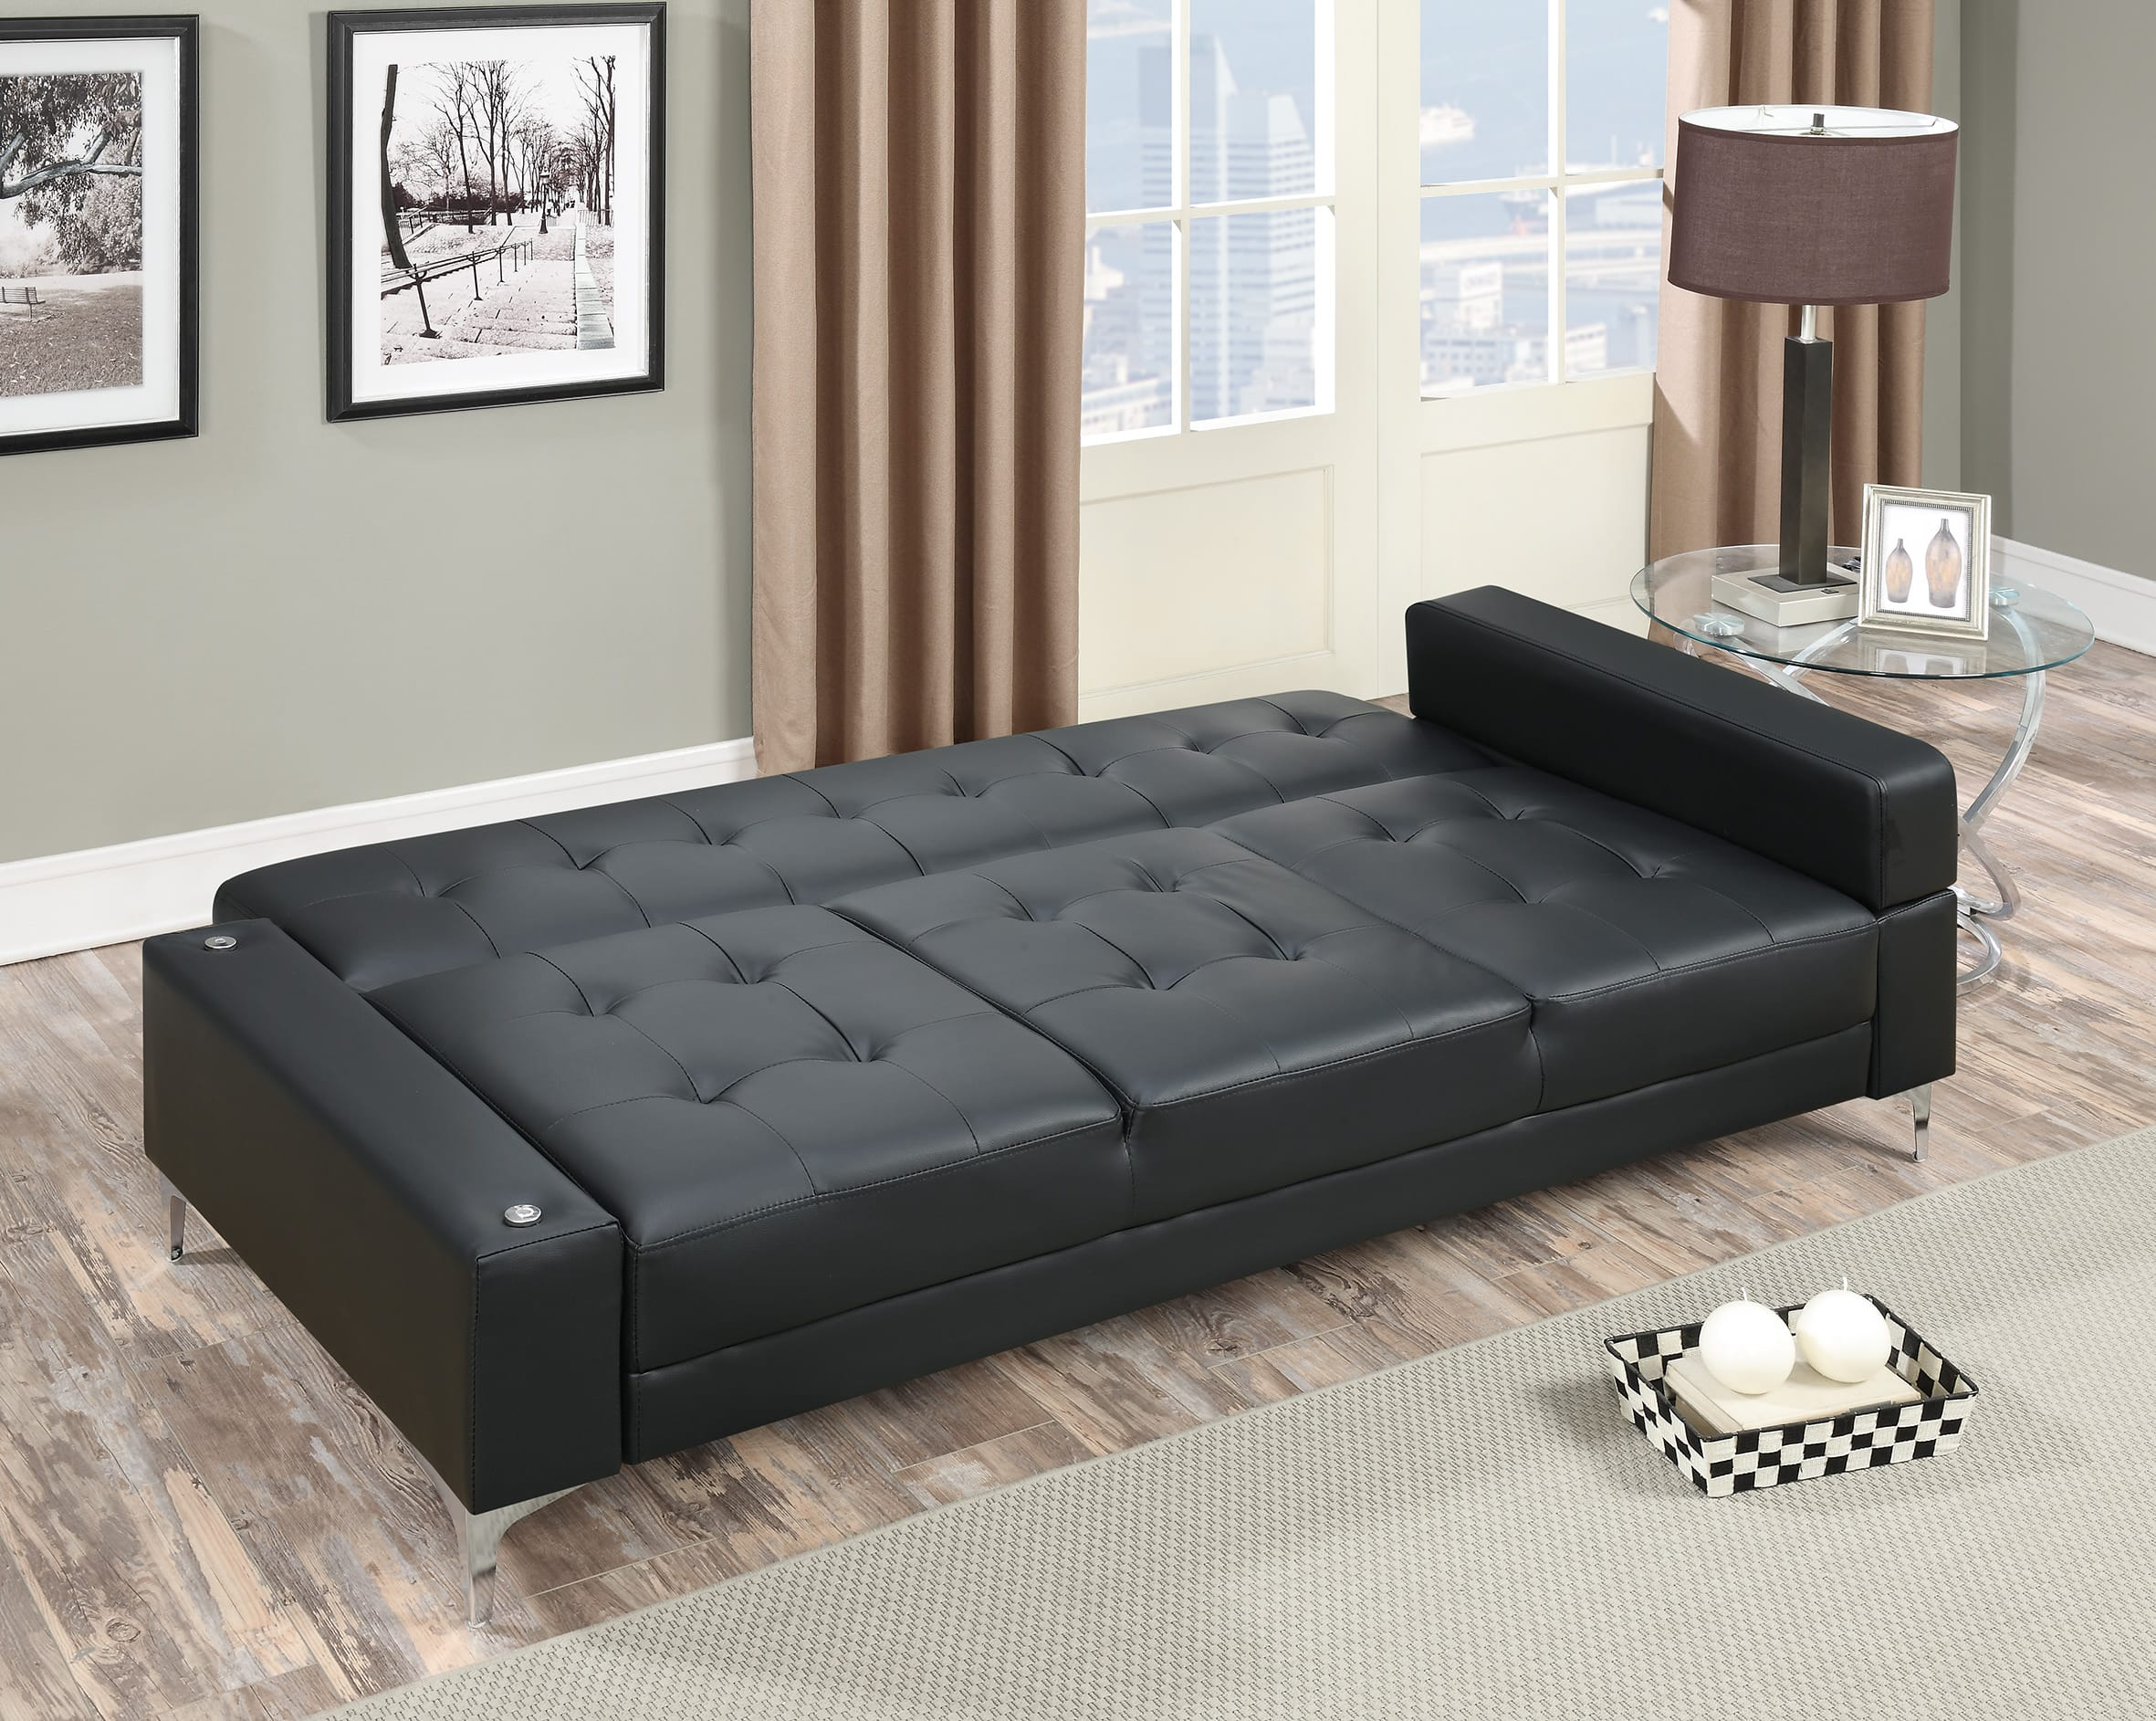 F6830 Black Convertible Sofa Bed by Poundex